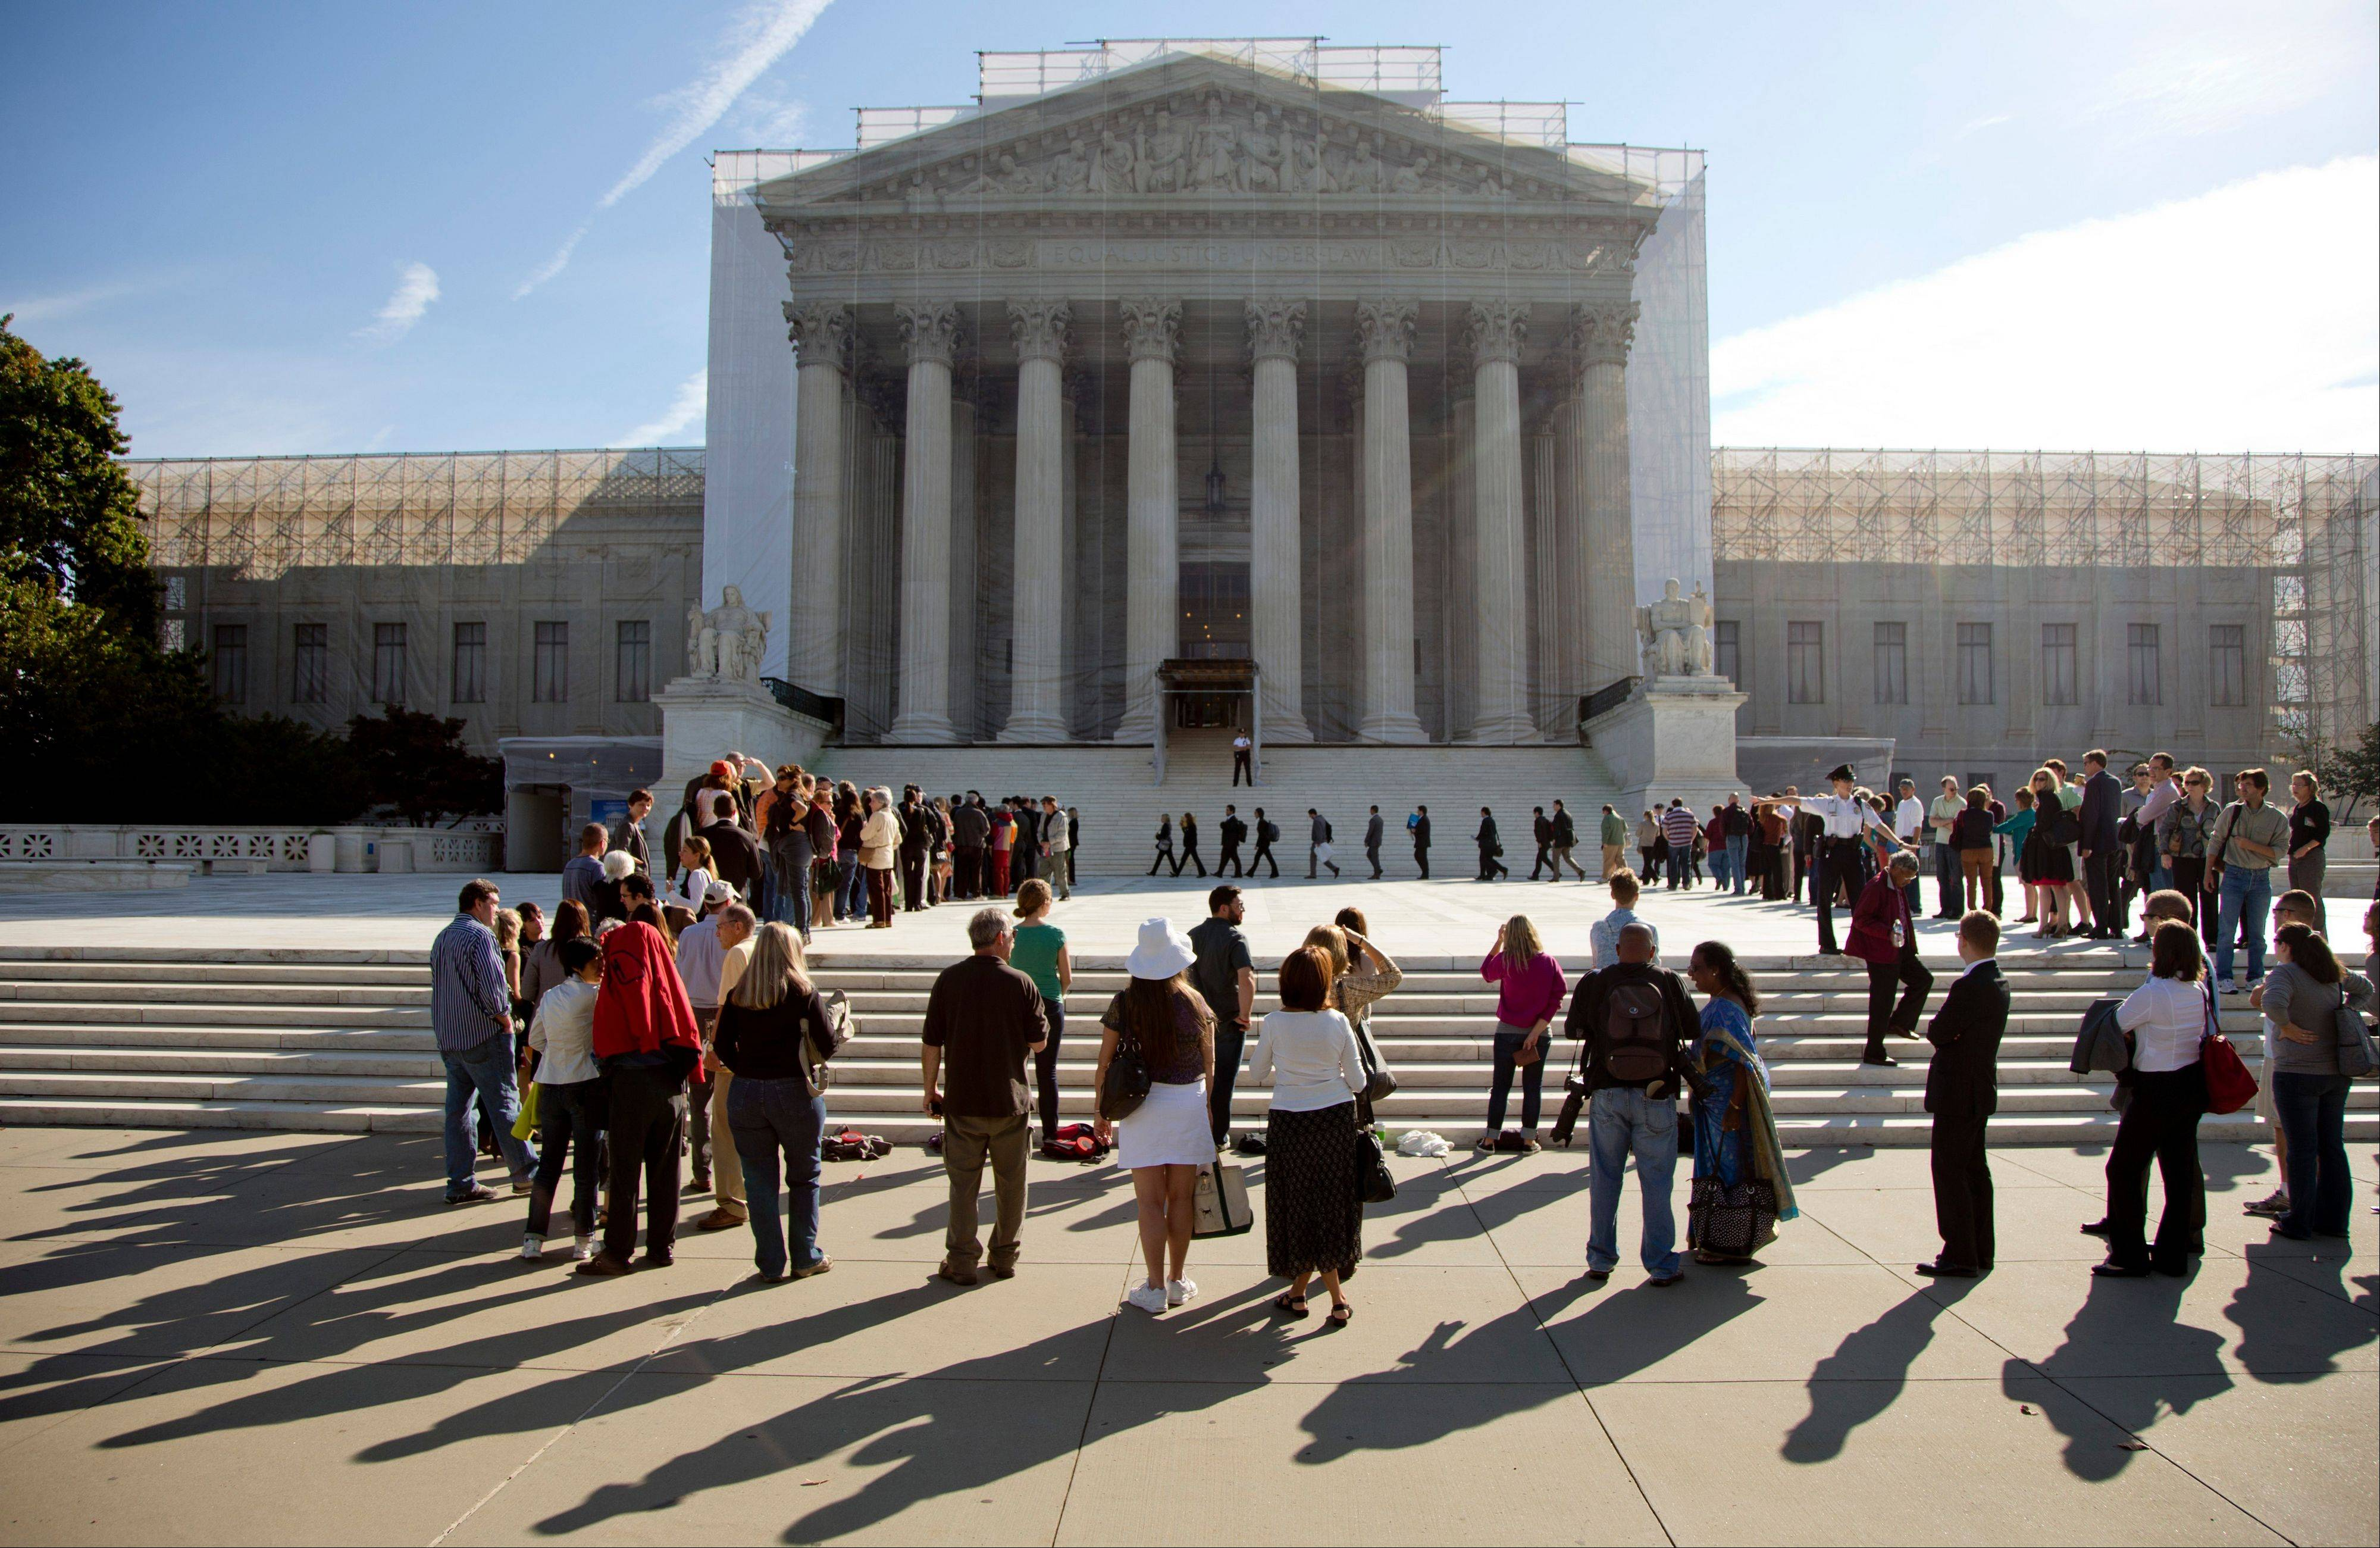 People wait in line to enter the Supreme Court in Washington last October as the court embarked on a new term.